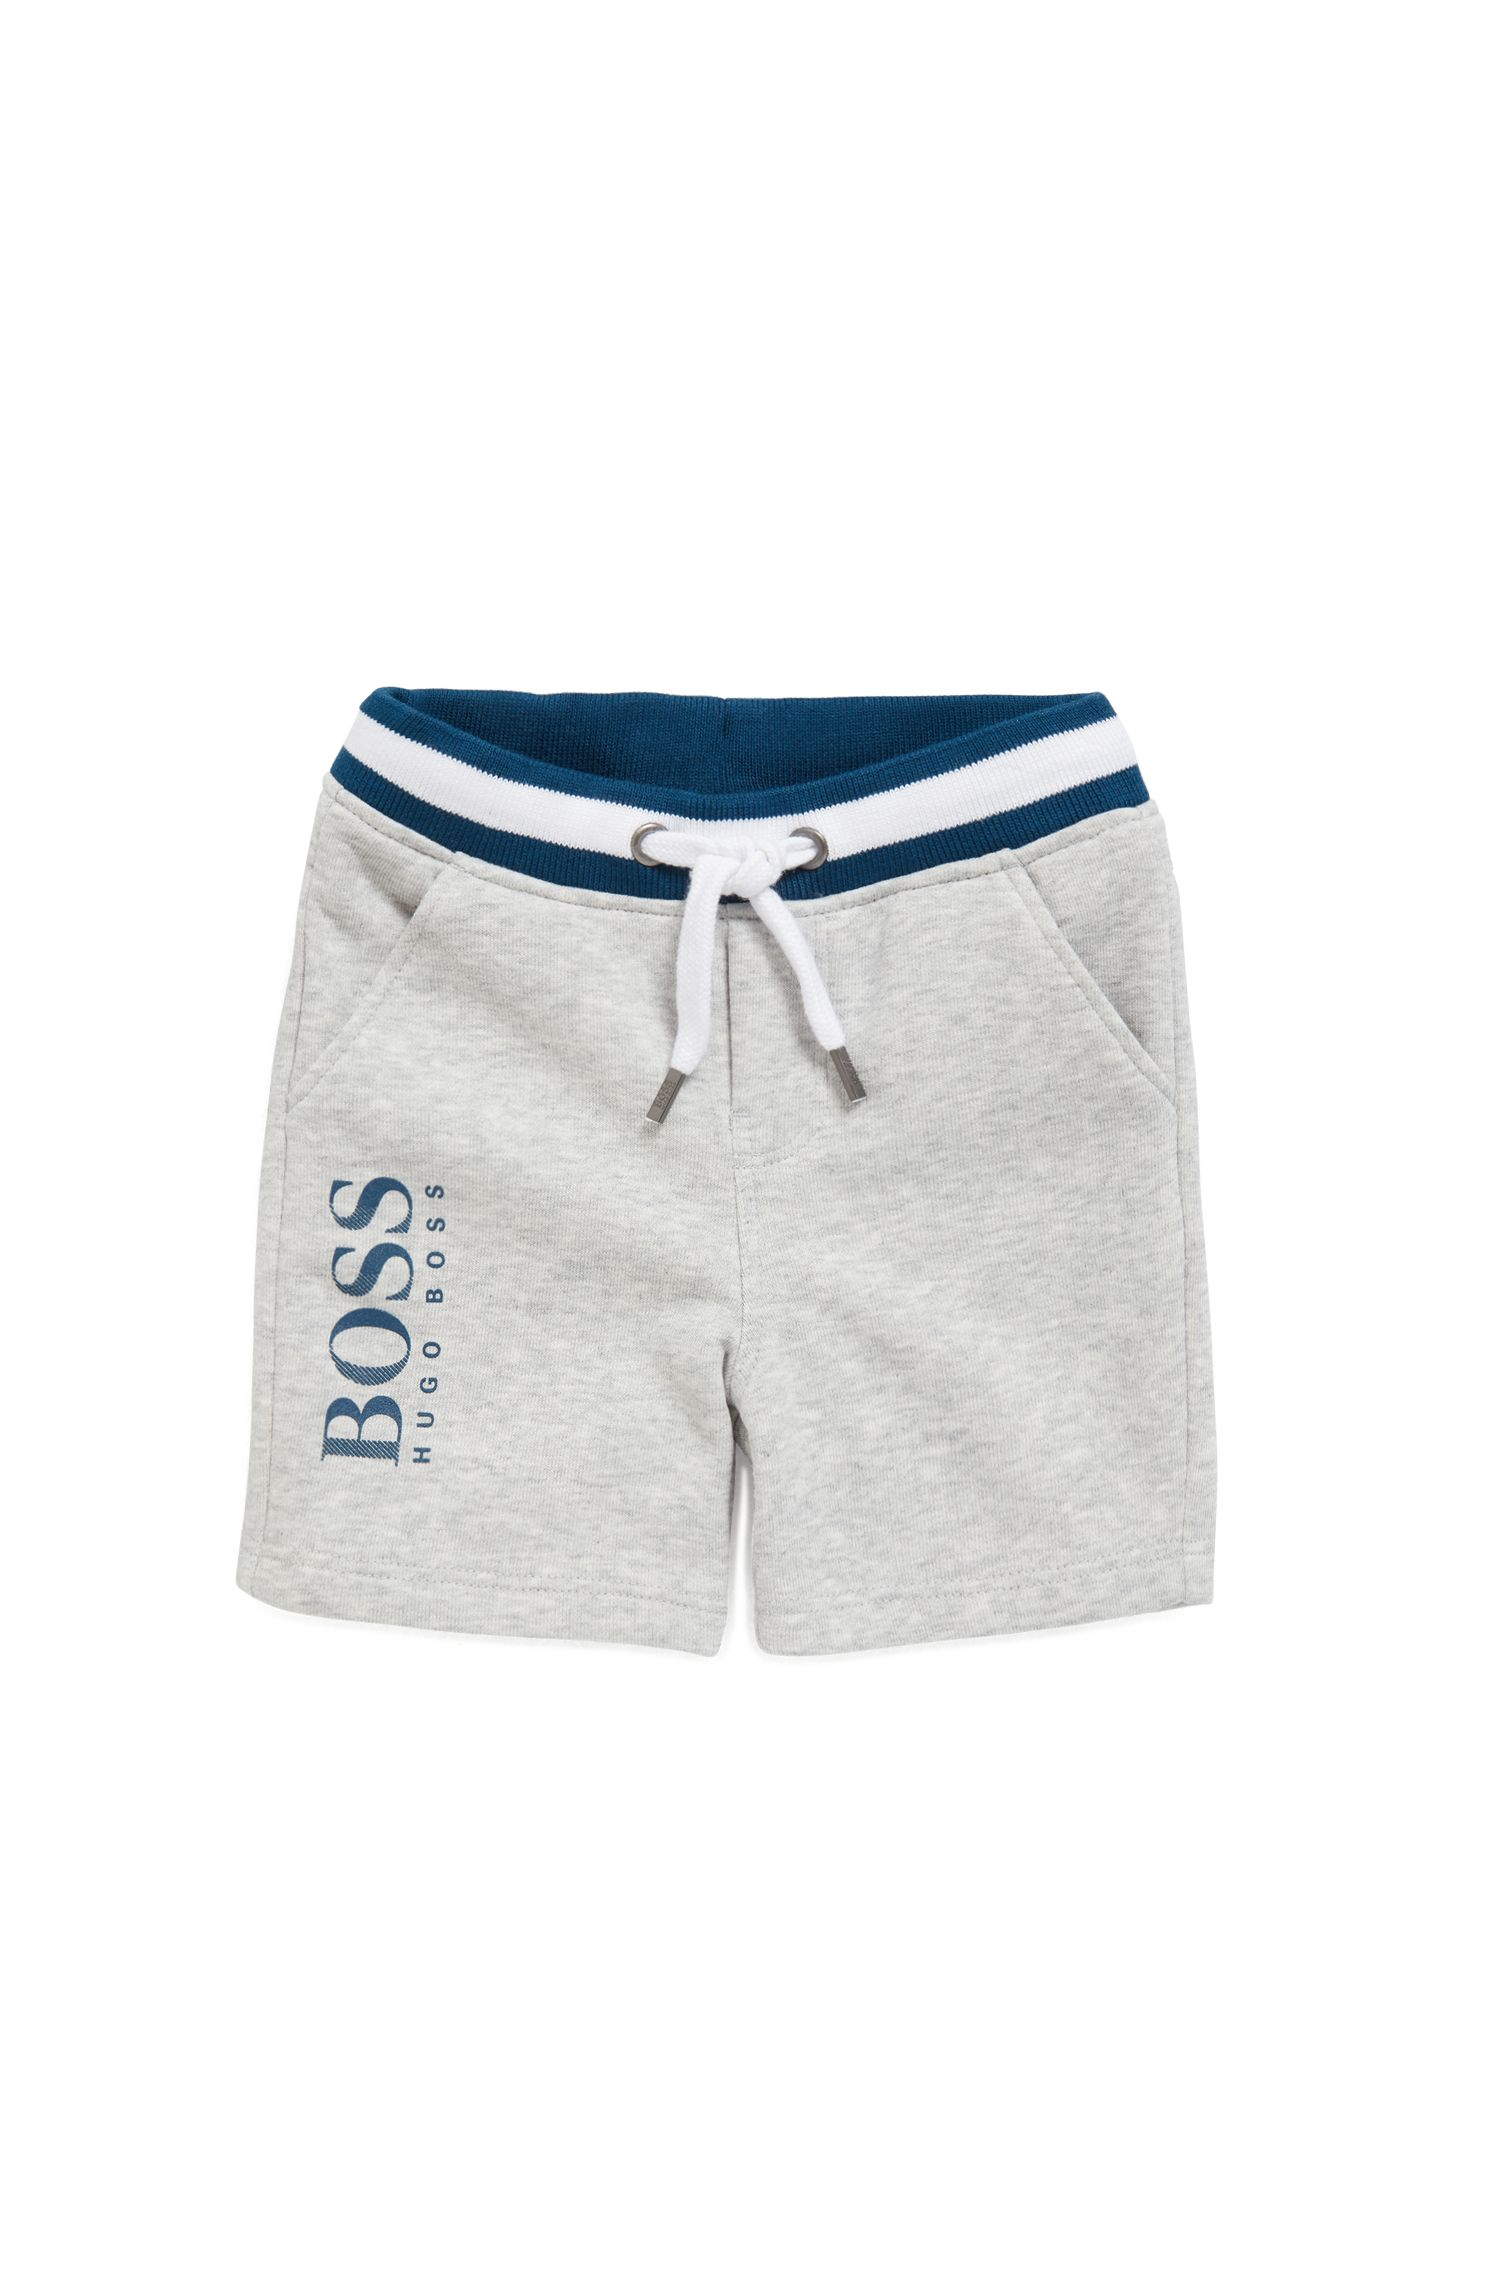 Kids-Bermuda-Shorts aus French Terry, Hellgrau